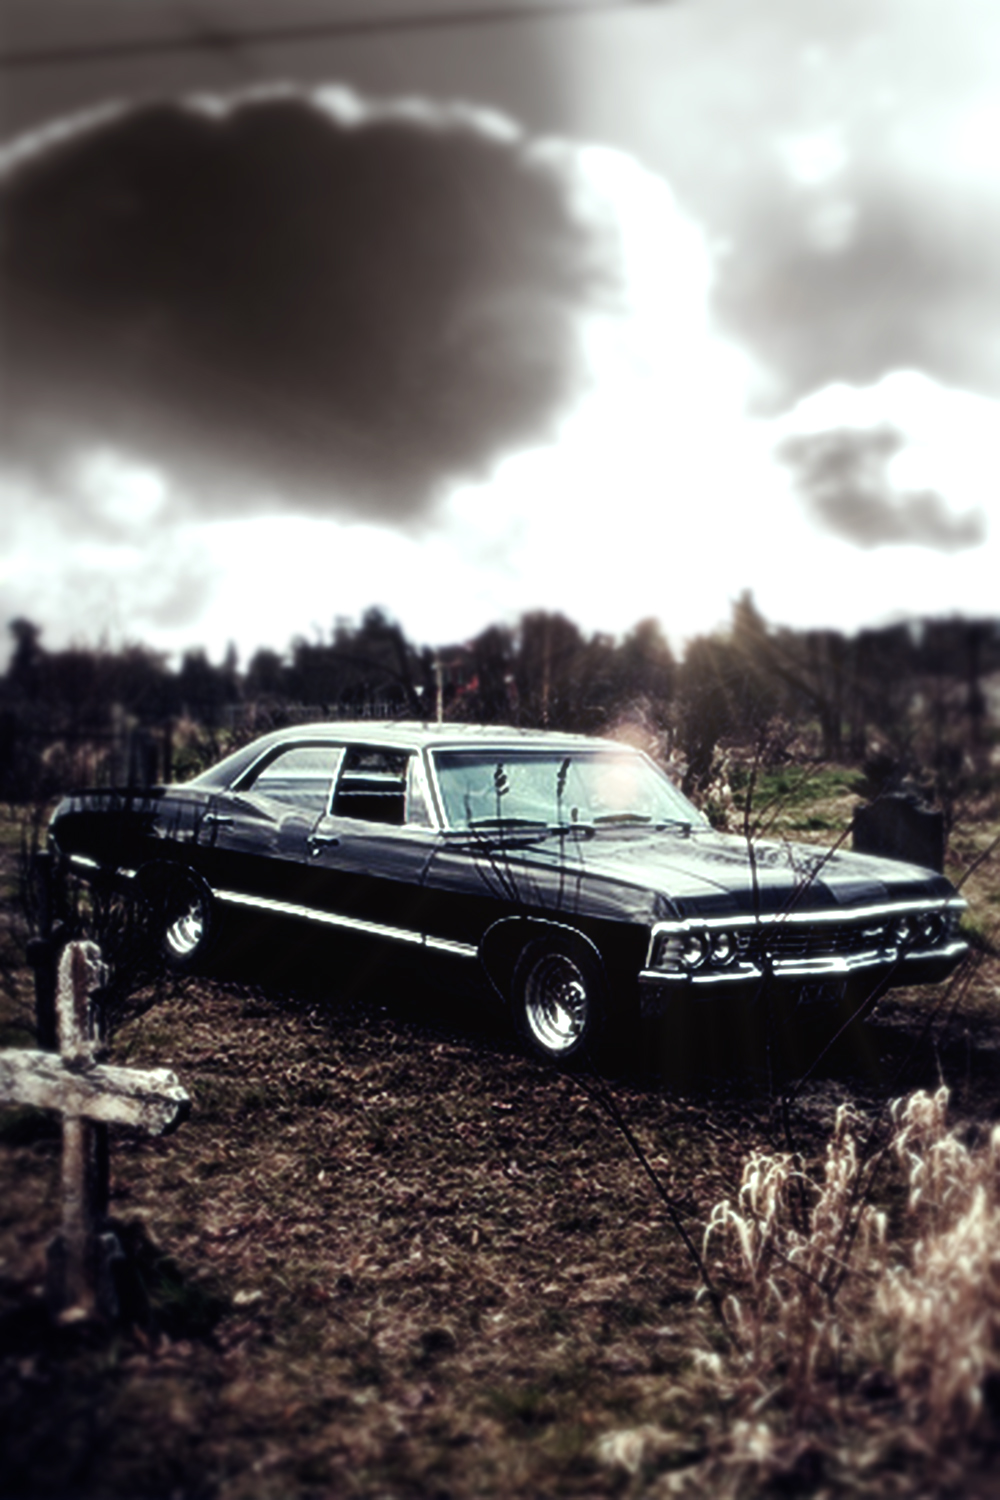 Supernatural 67 Chevy Impala Iphone Wallpaper By Xerix93 D62cvdj